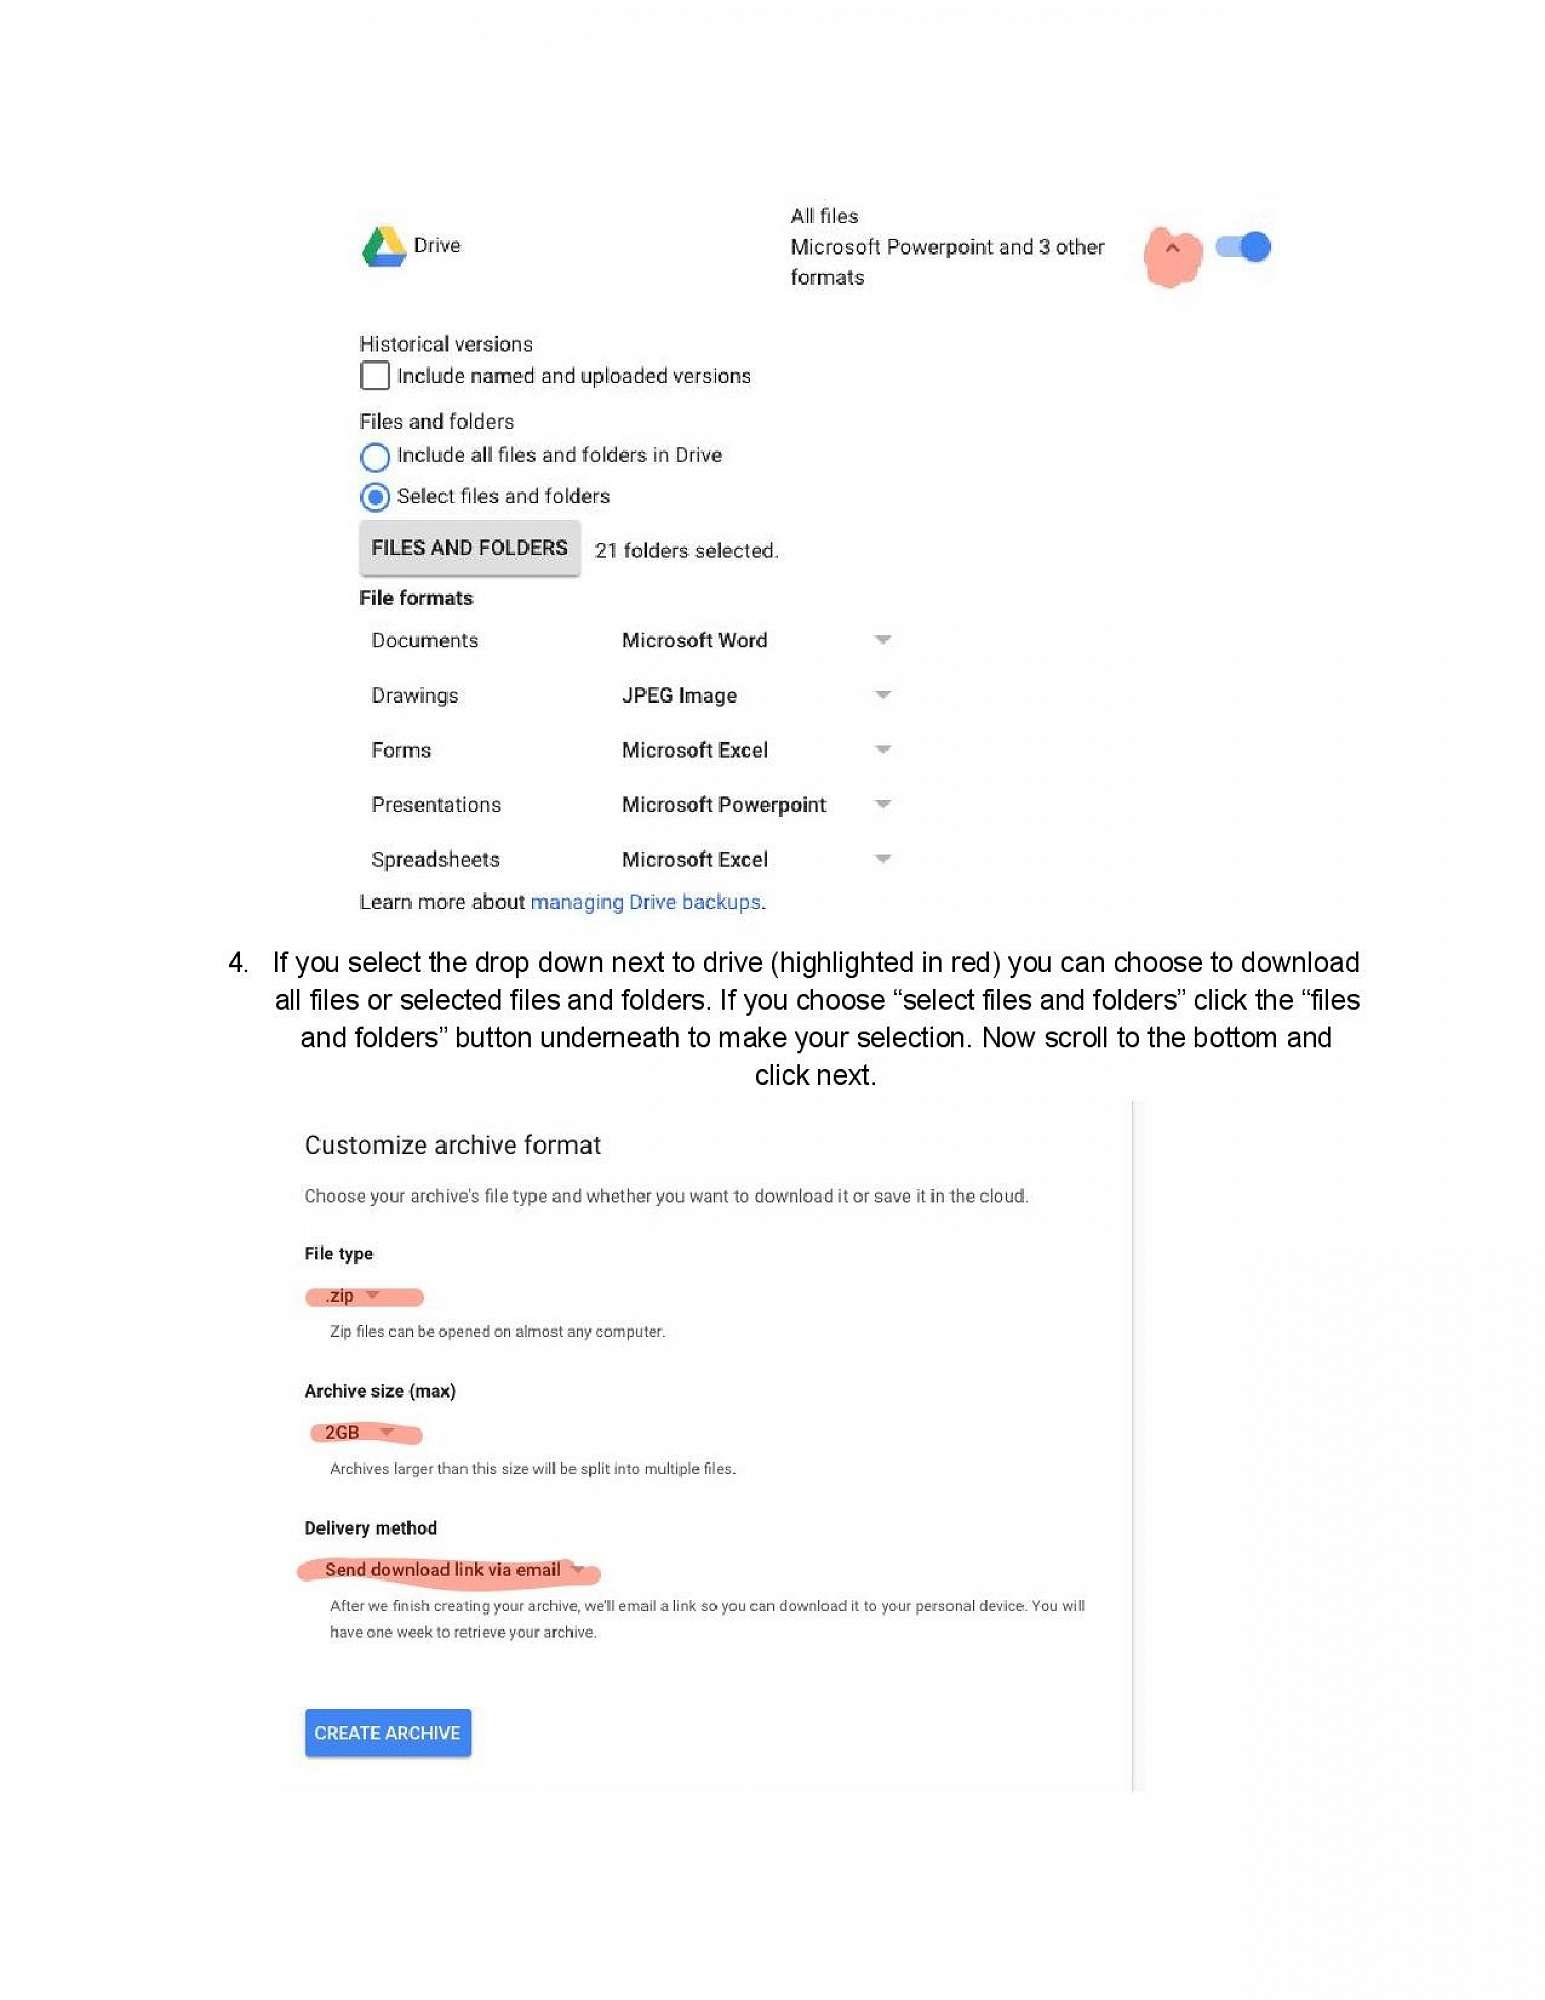 Instructions page 2